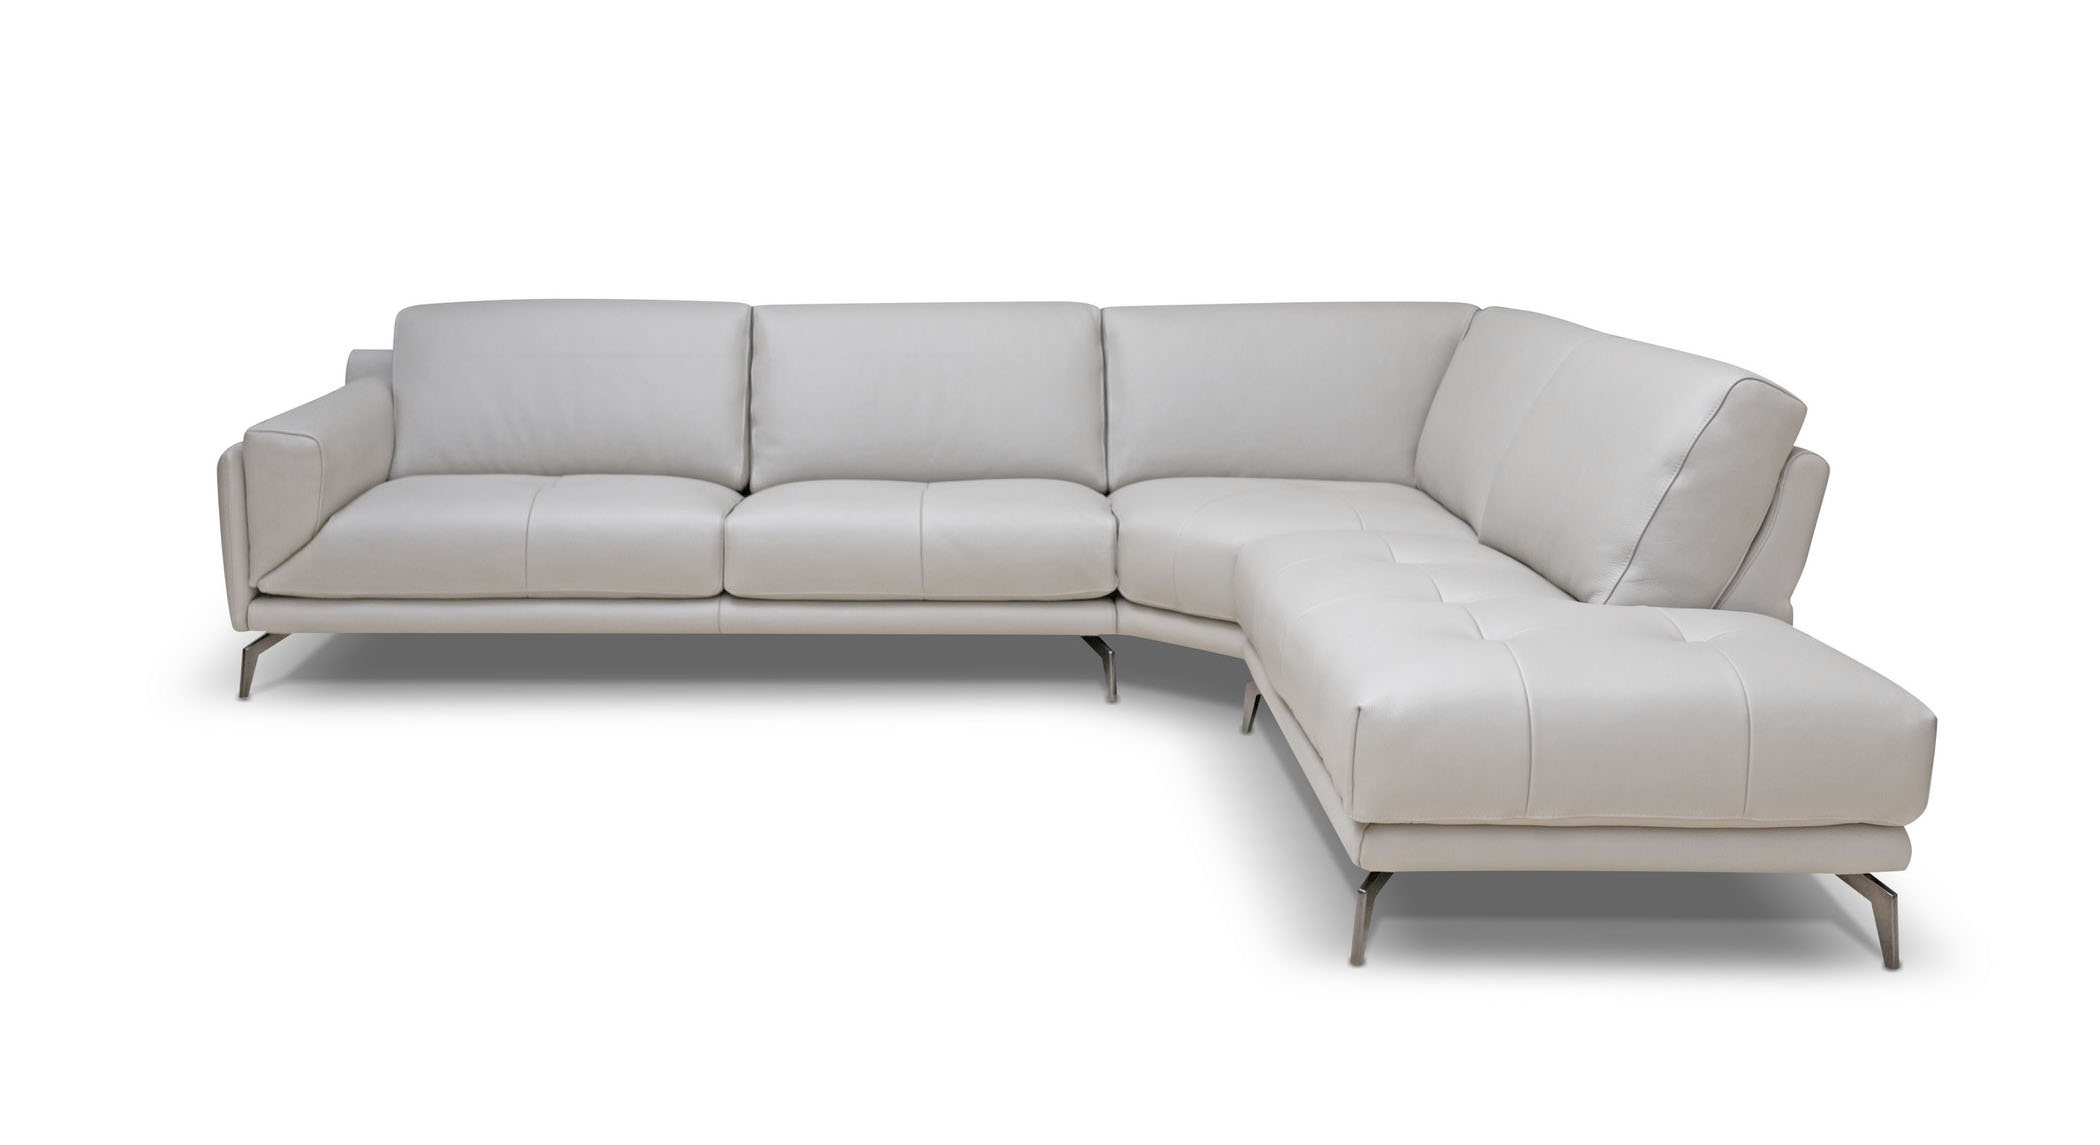 Sofas & Sectionals – Braccisofas intended for Glamour Ii 3 Piece Sectionals (Image 27 of 30)